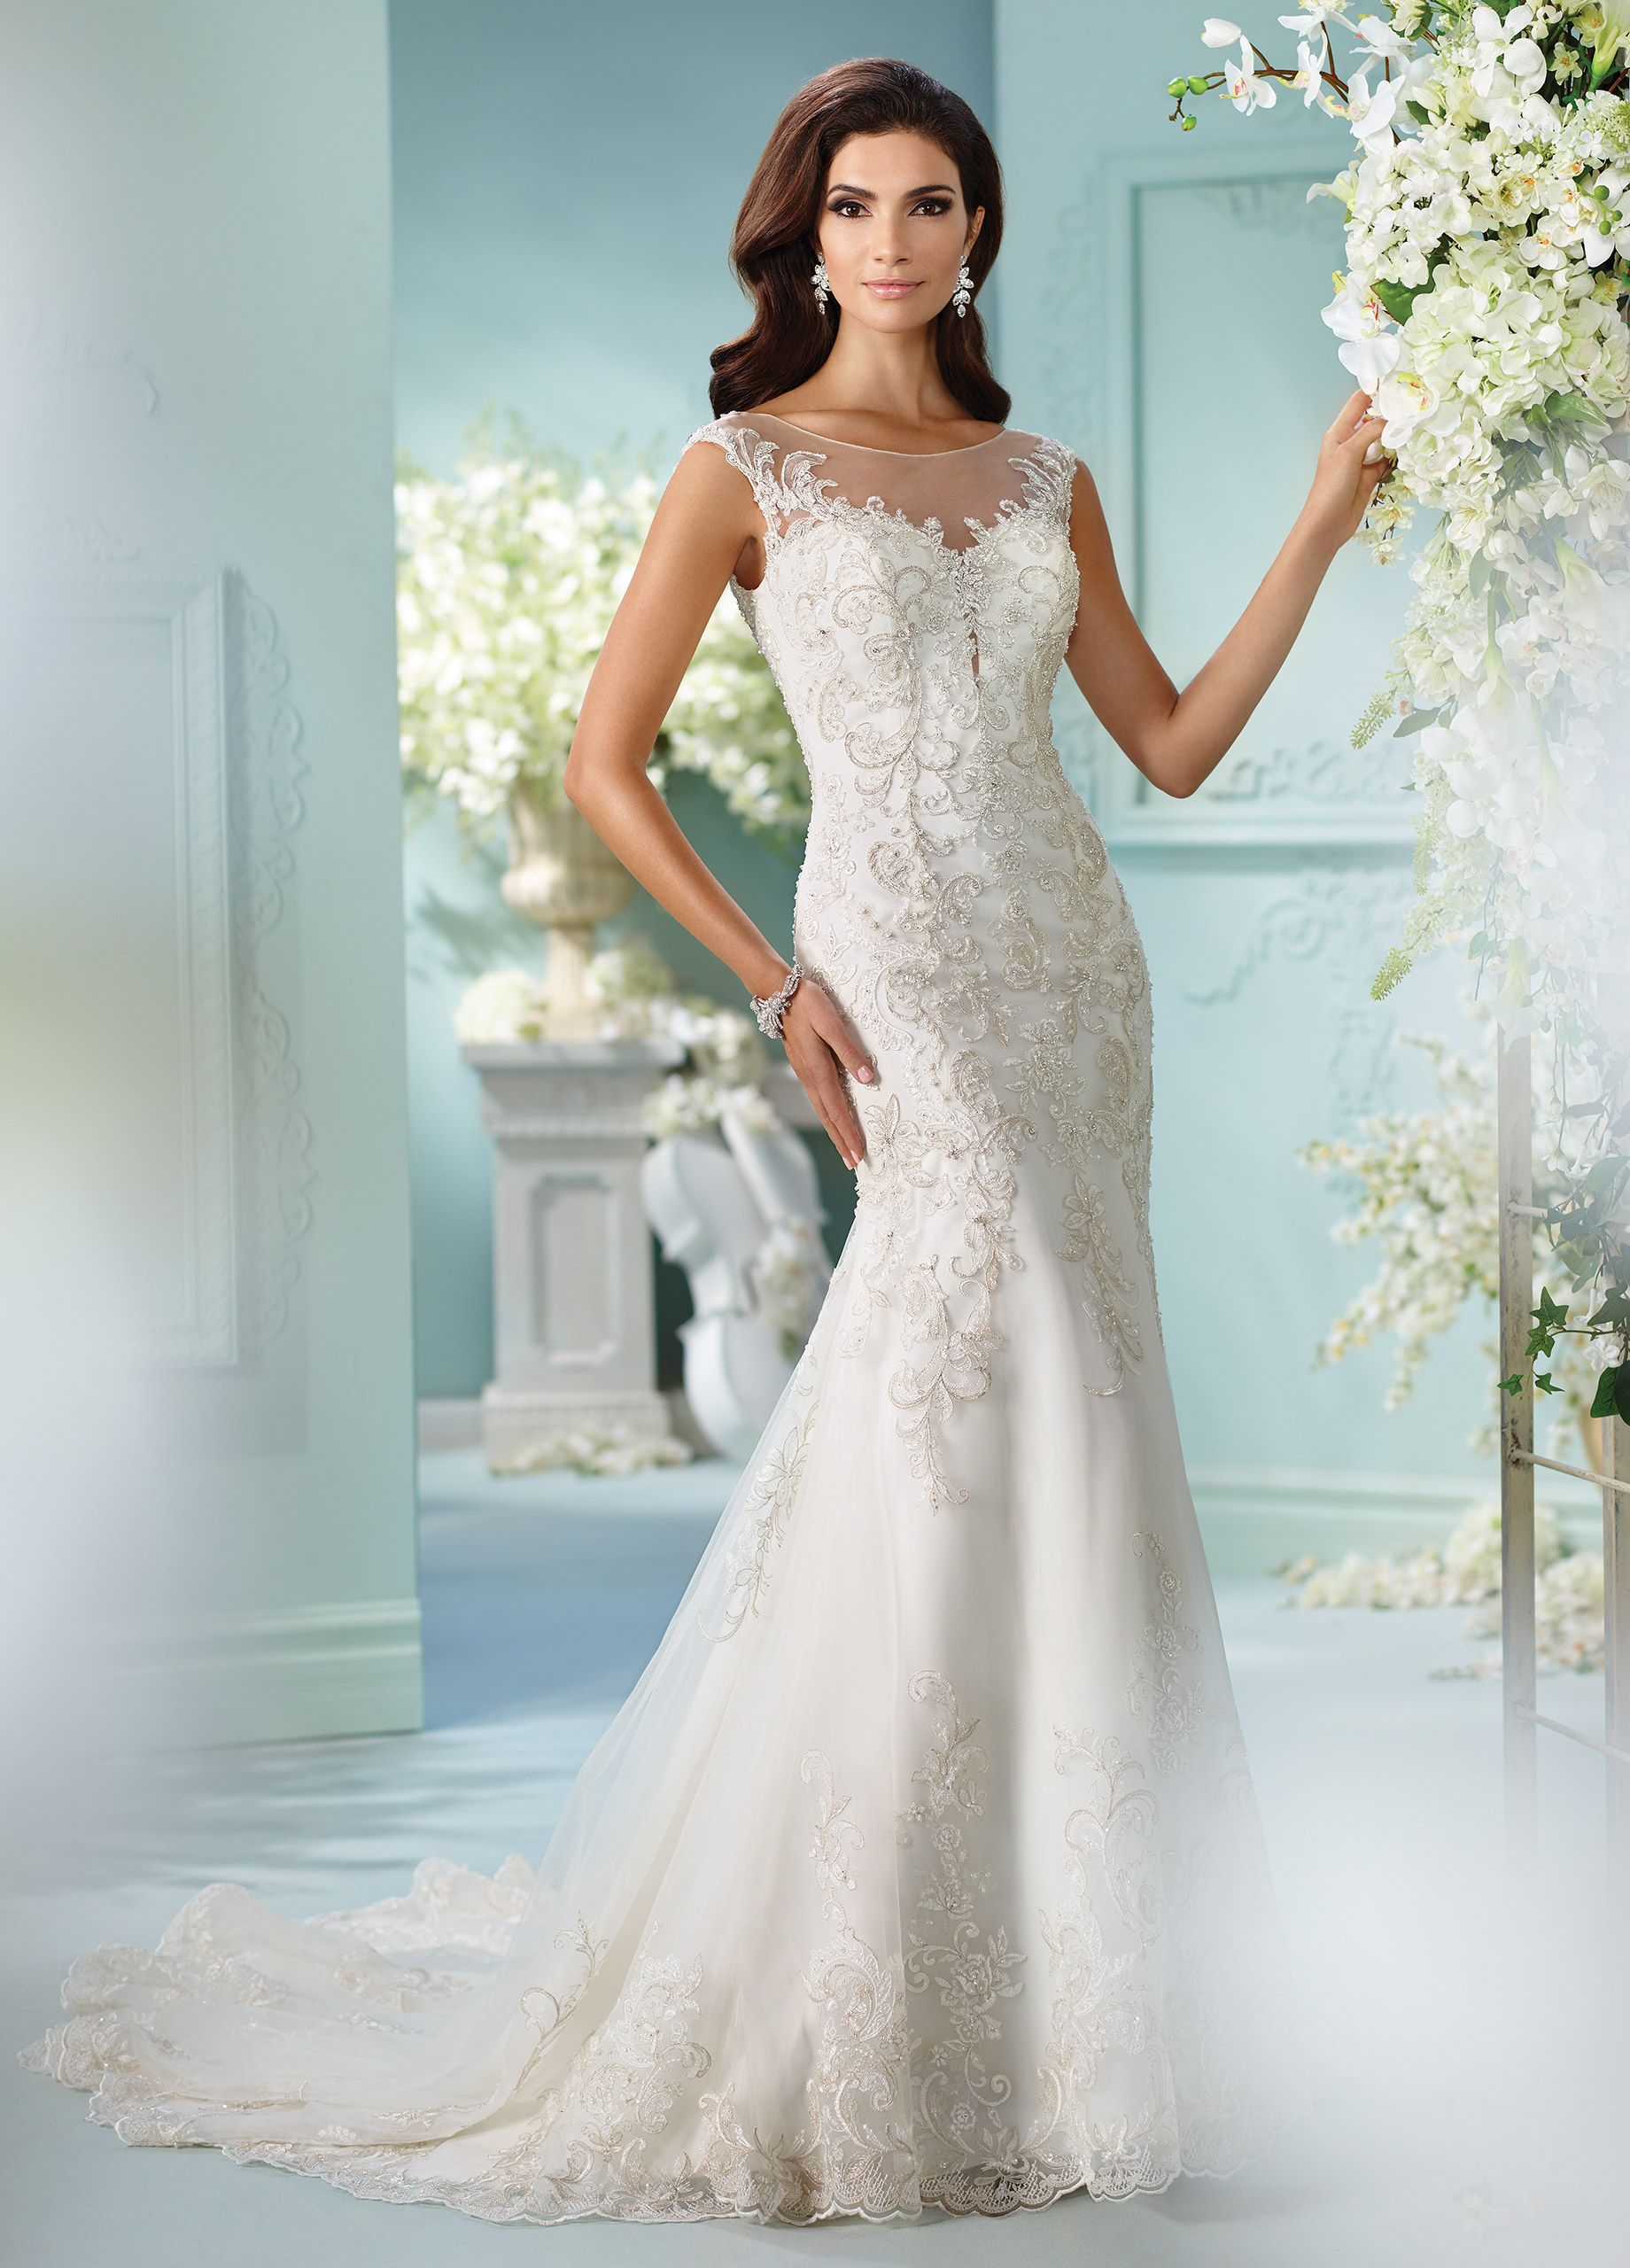 Beautiful Sophia Tolli Wedding Gown Pictures - All Wedding Dresses ...